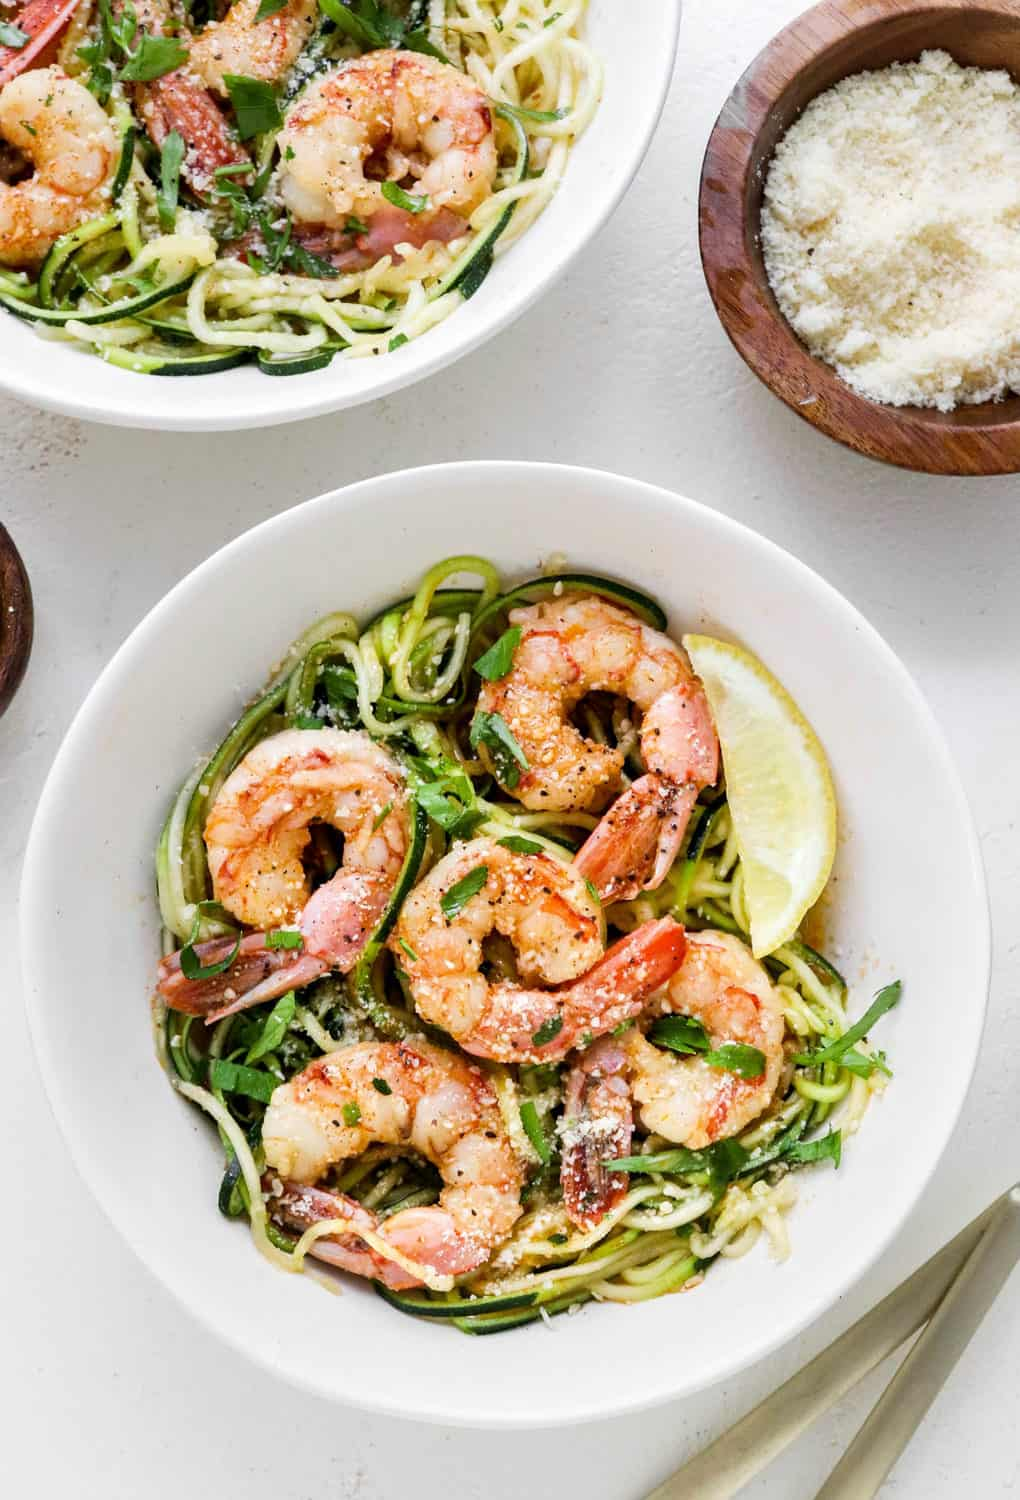 Round white bowl of shrimp scampi with zucchini noodles with another bowl of it behind it and gold plated silverware in front of it on a white table.